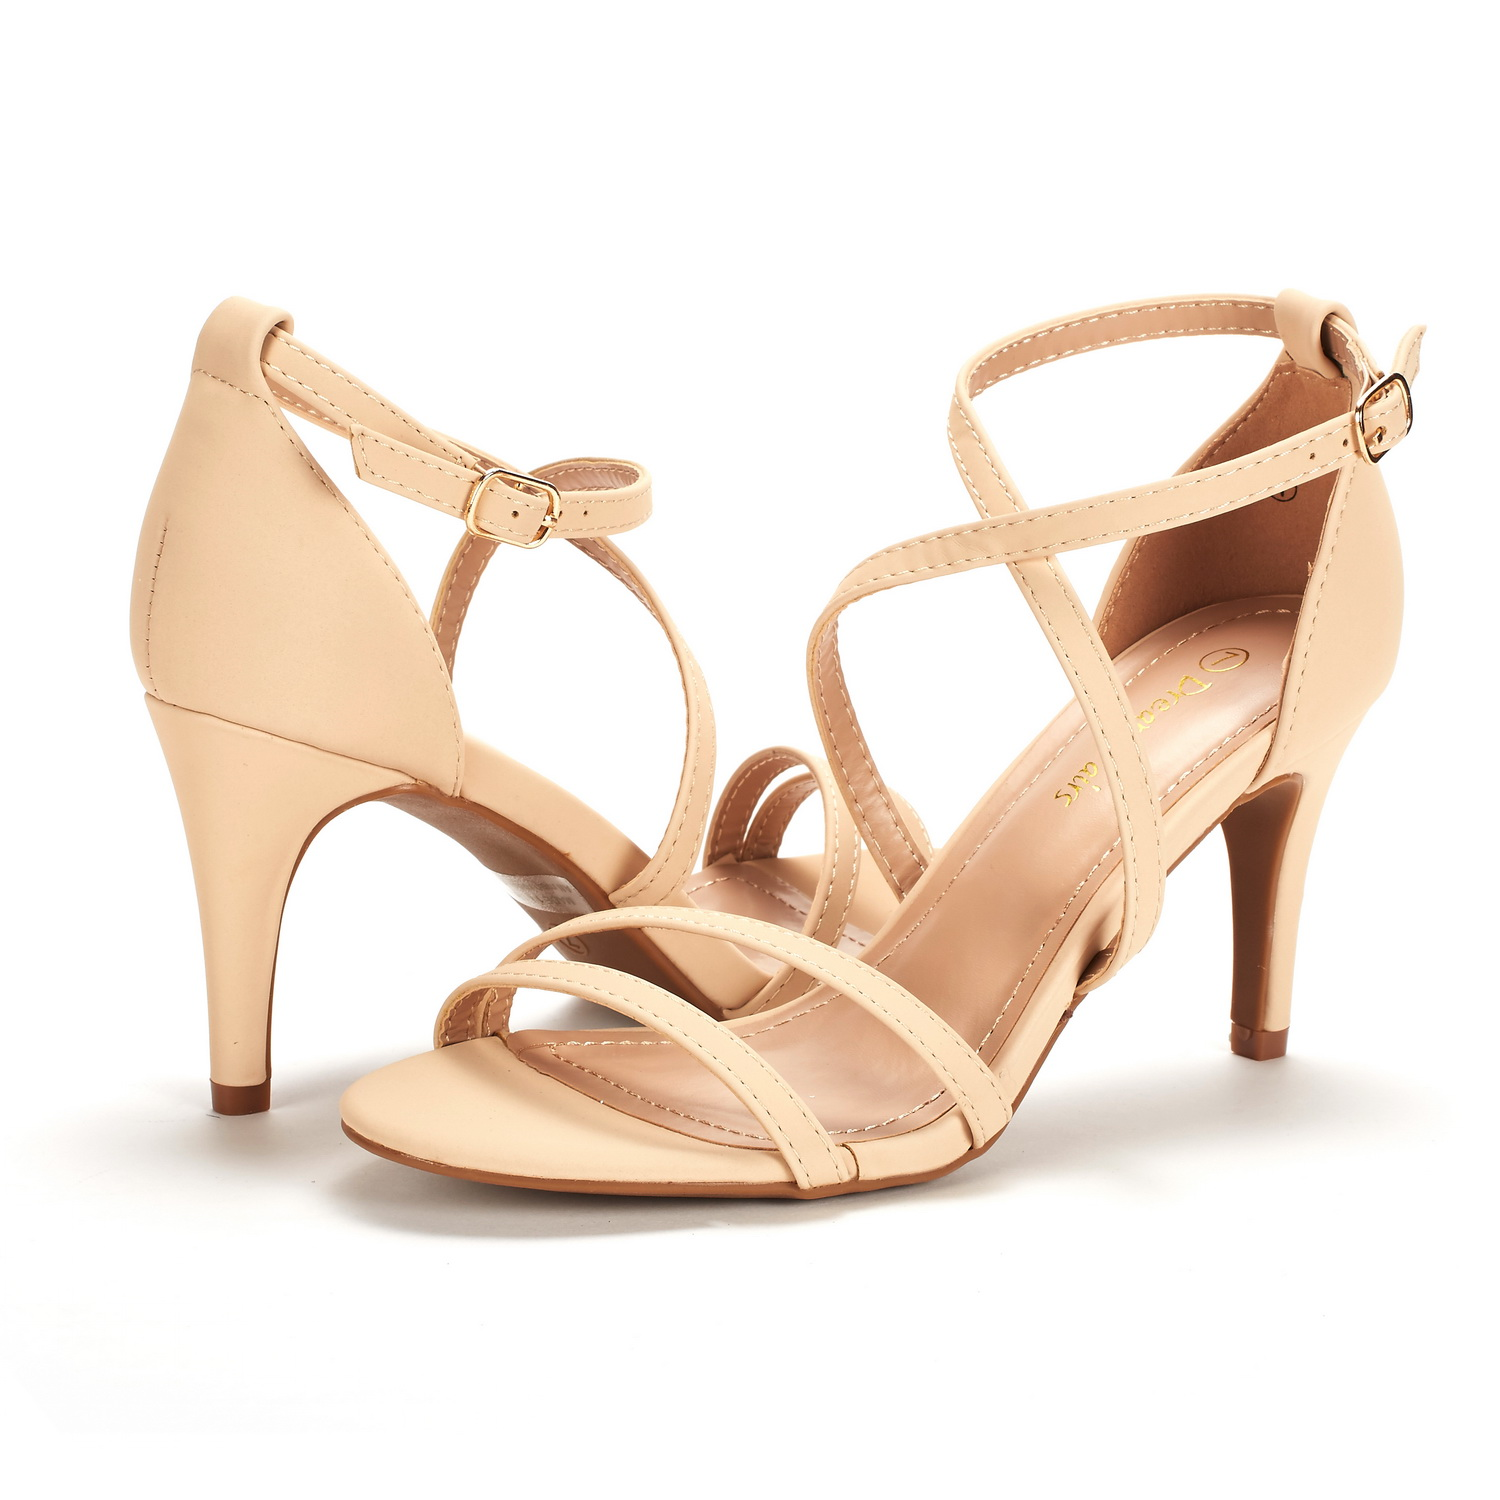 DREAM-PAIRS-Women-039-s-Ankle-Strap-High-Heel-Sandals-Dress-Shoes-Wedding-Party thumbnail 37